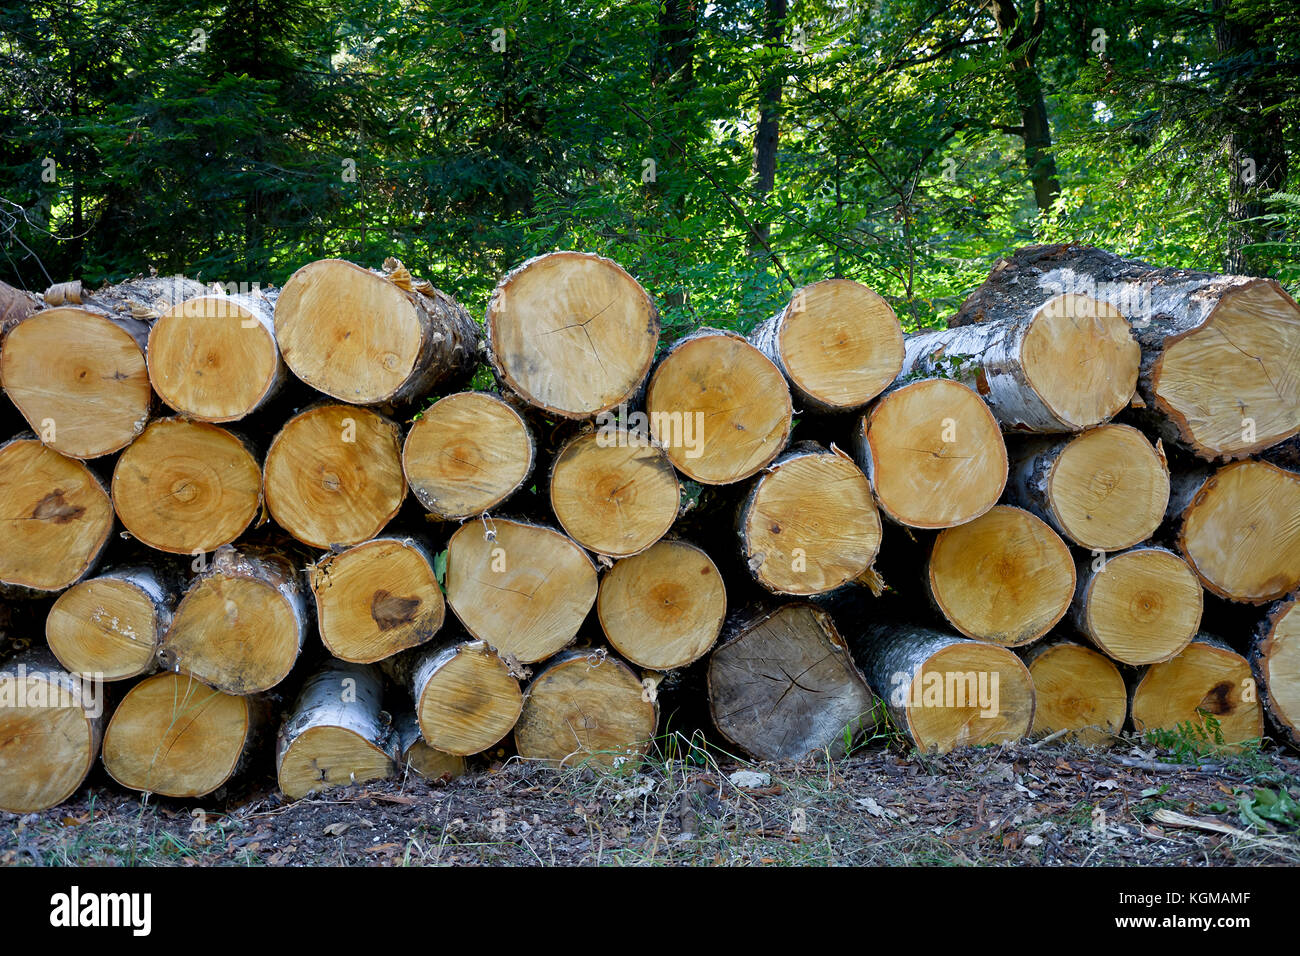 forest trees been cut stockfotos forest trees been cut bilder alamy. Black Bedroom Furniture Sets. Home Design Ideas